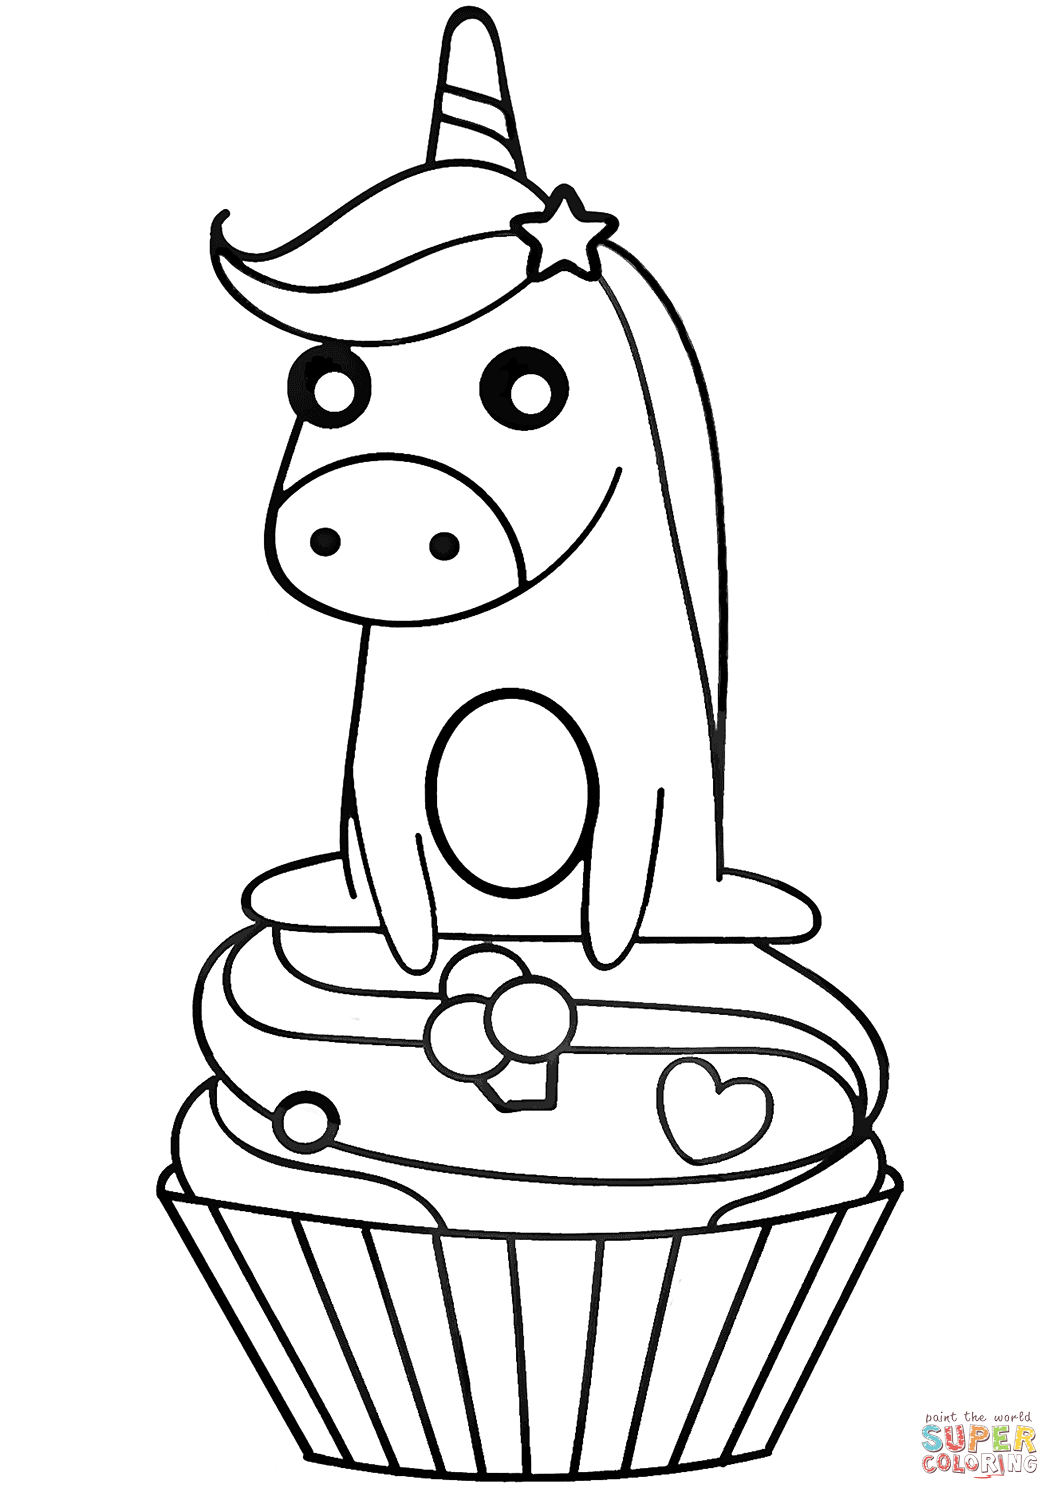 Grab Your Fresh Coloring Pages Cupcakes For You Https Gethighit Com Cupcake Coloring Pages Teddy Bear Coloring Pages Shopkins Coloring Pages Free Printable